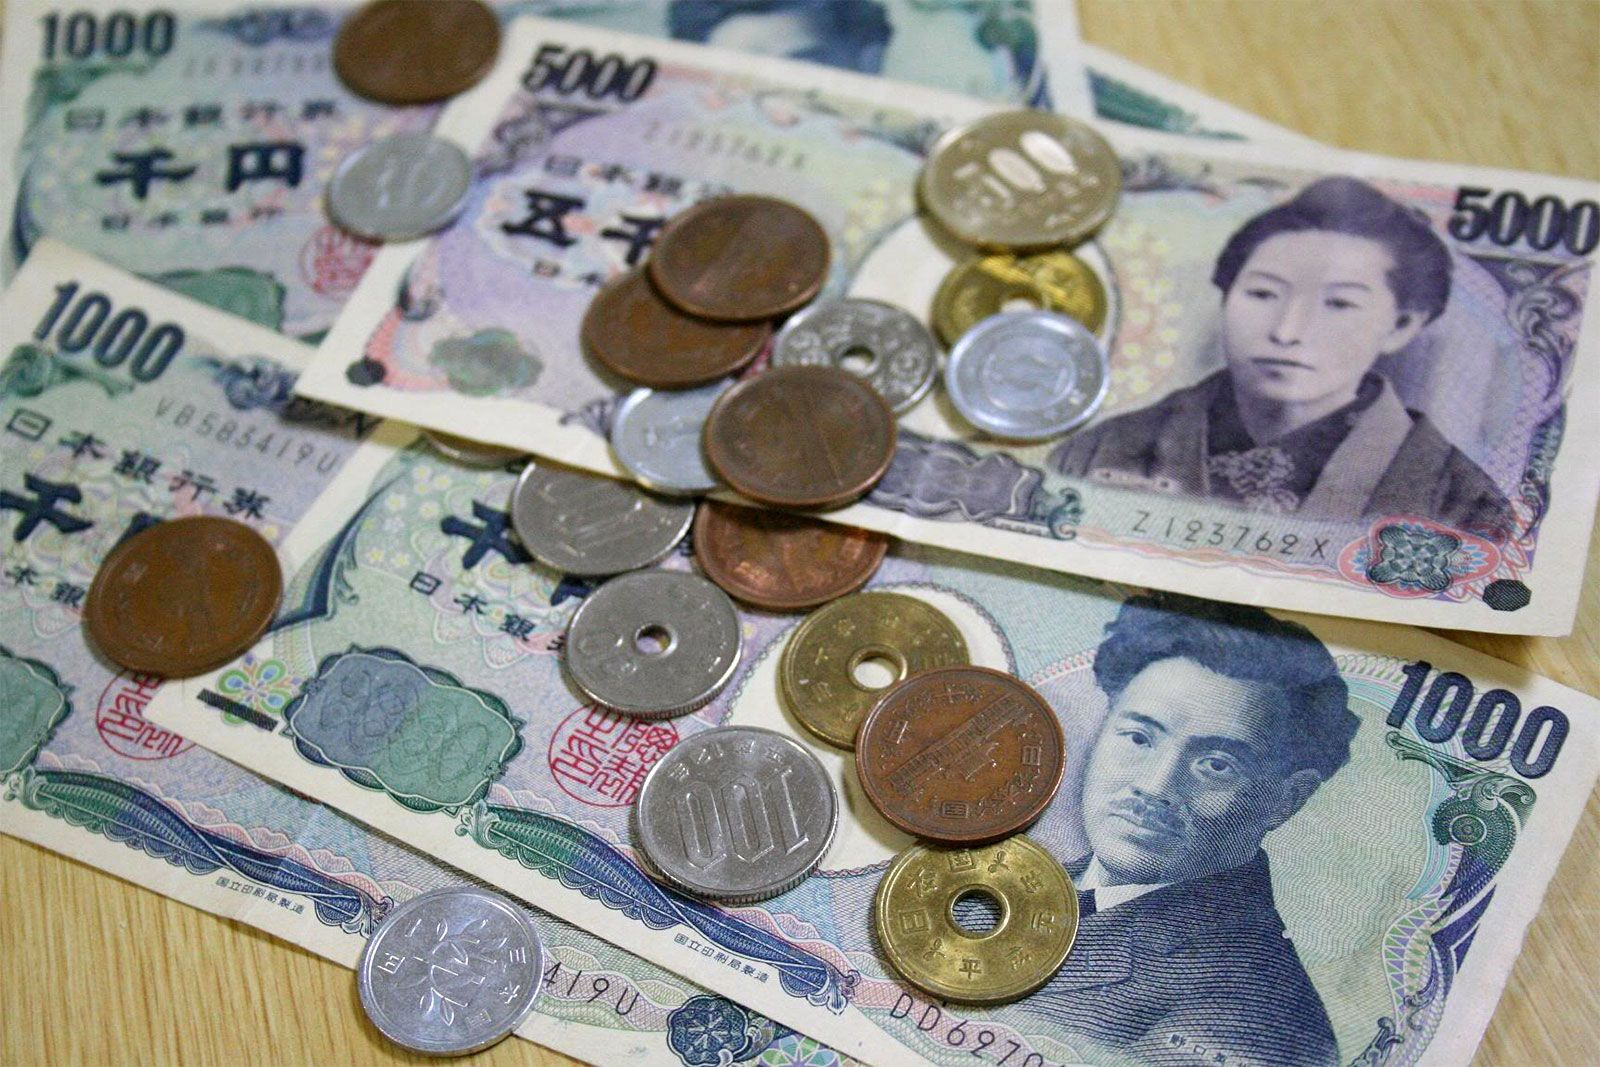 Japan Entry Fees Proposed By Lawmakers As Overregulation Fears Grow